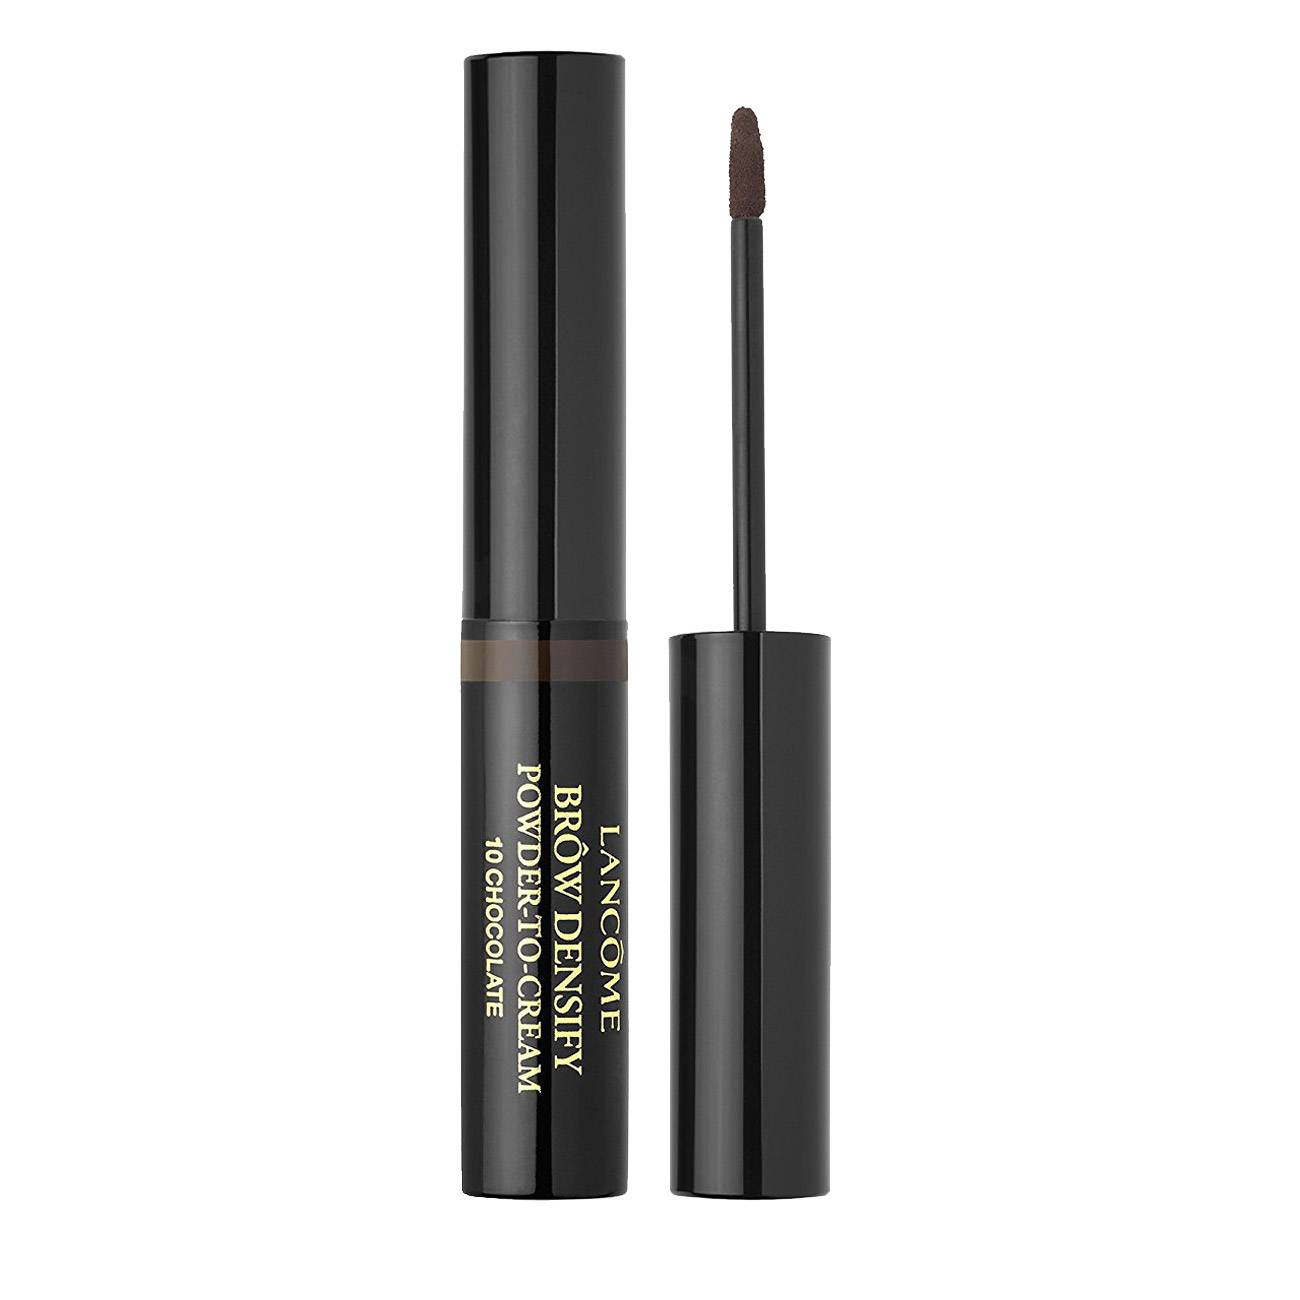 BROW DENSIFY POWDER-TO-CREAM 010 14ml